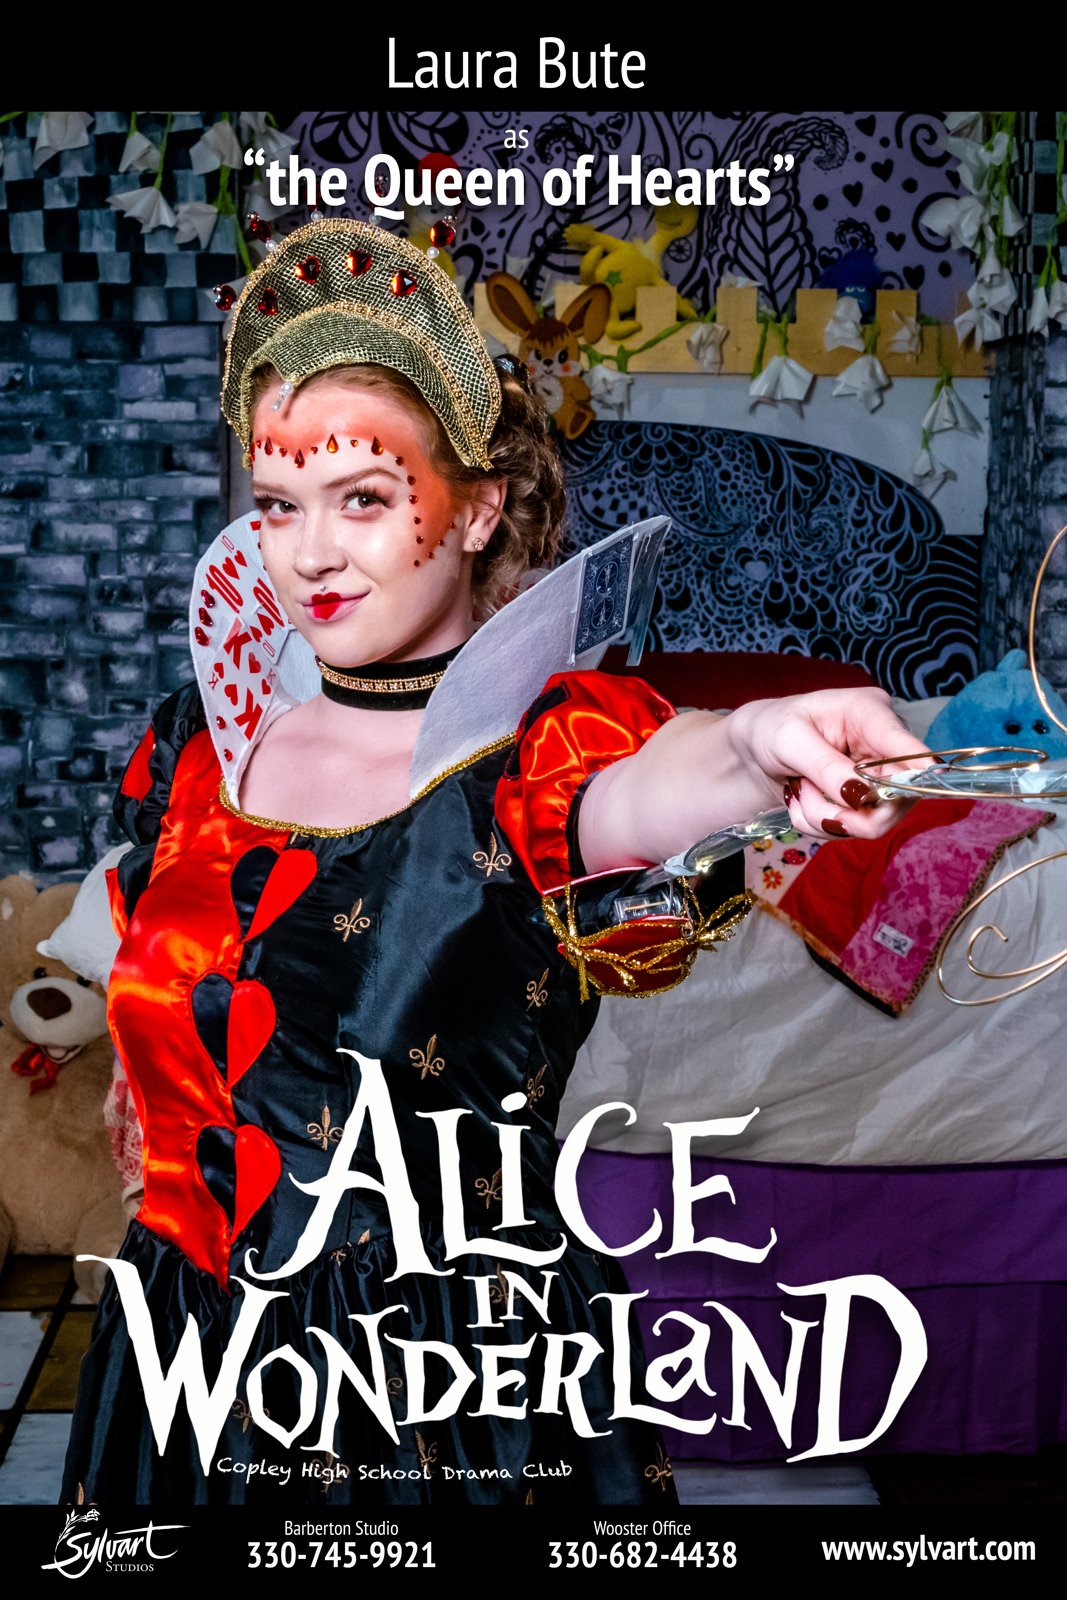 LAURA-Alice in Wonderland.JPG